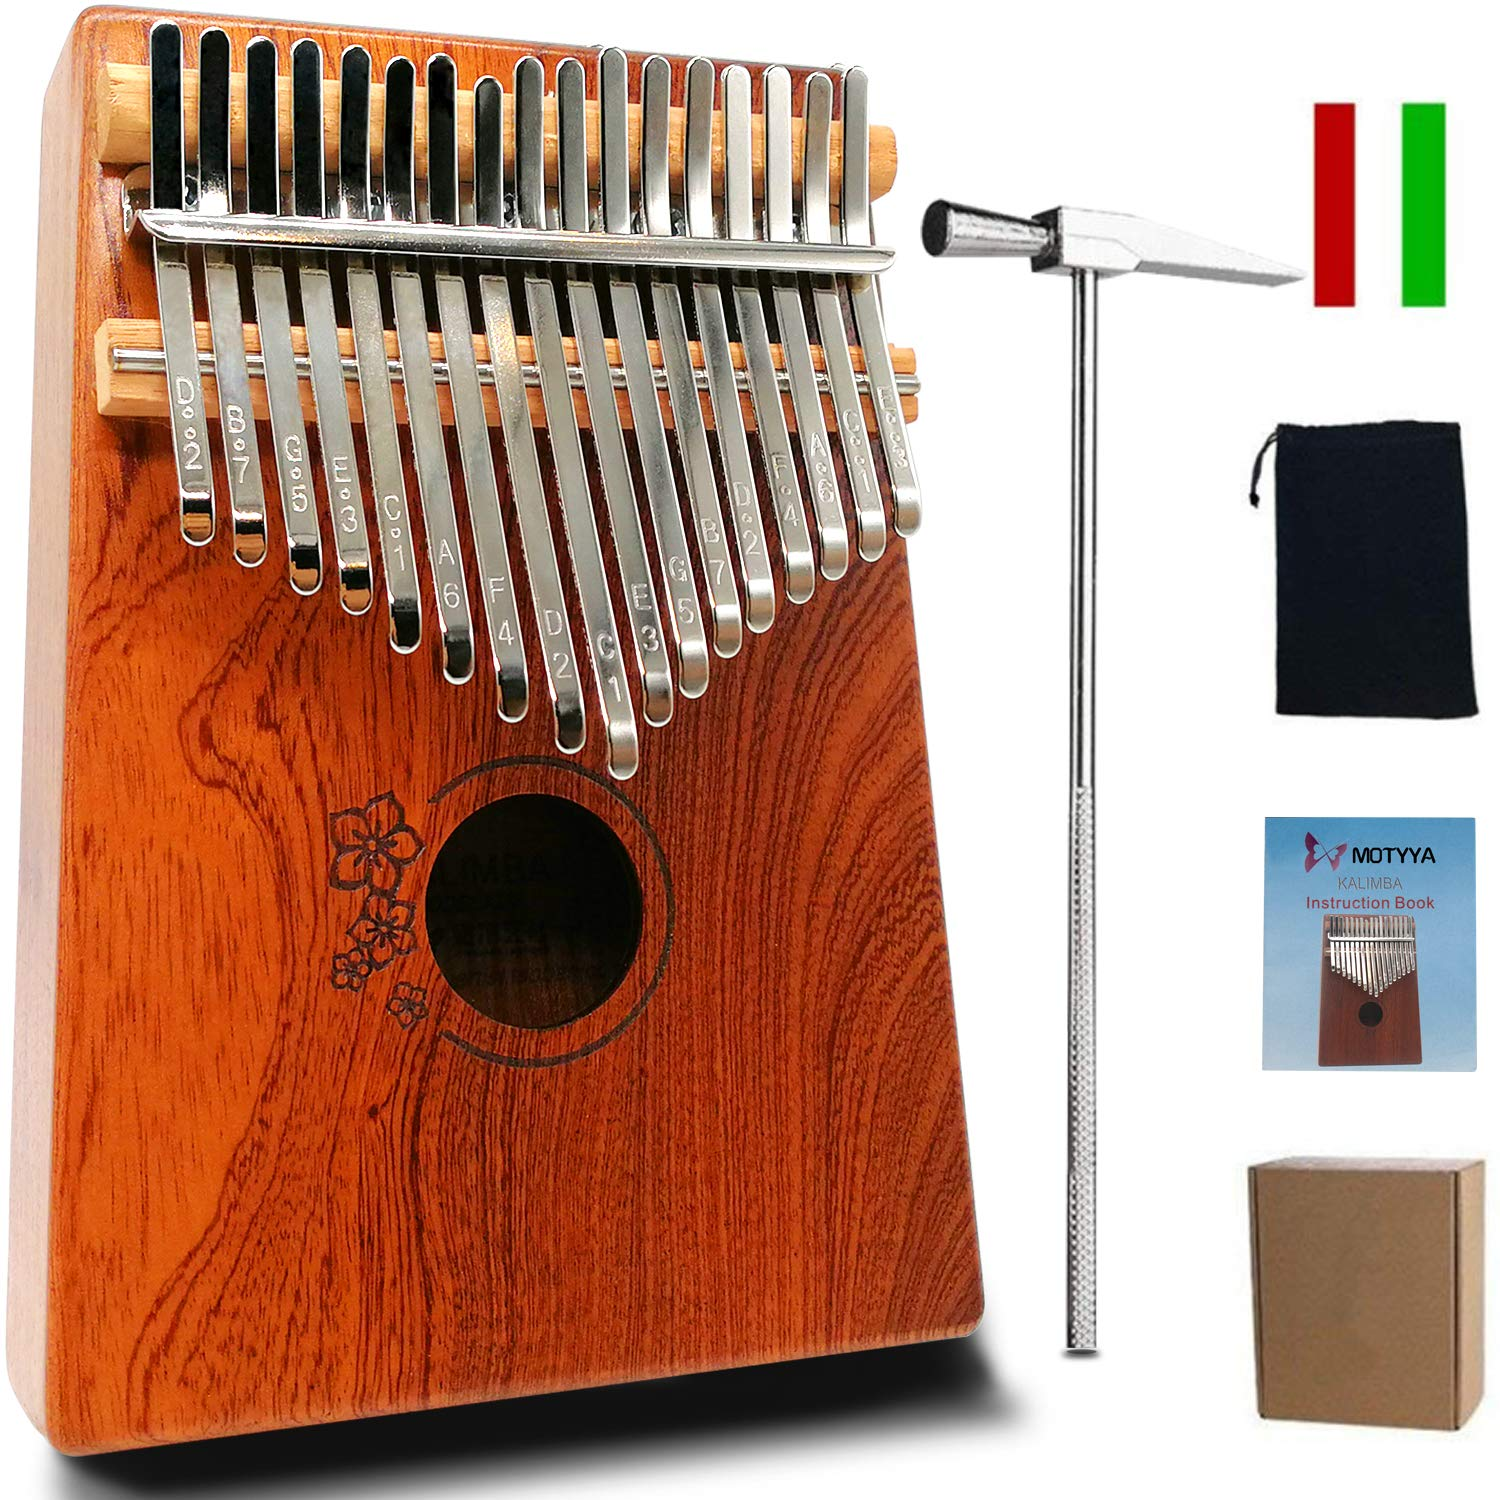 Popular Brand 1 Set 17 Key Finger Kalimba Thumb Piano Pocket Size Supporting Bag Gecko Keyboard Marimba Wood Musical Instrument Goods Of Every Description Are Available Shoe Accessories